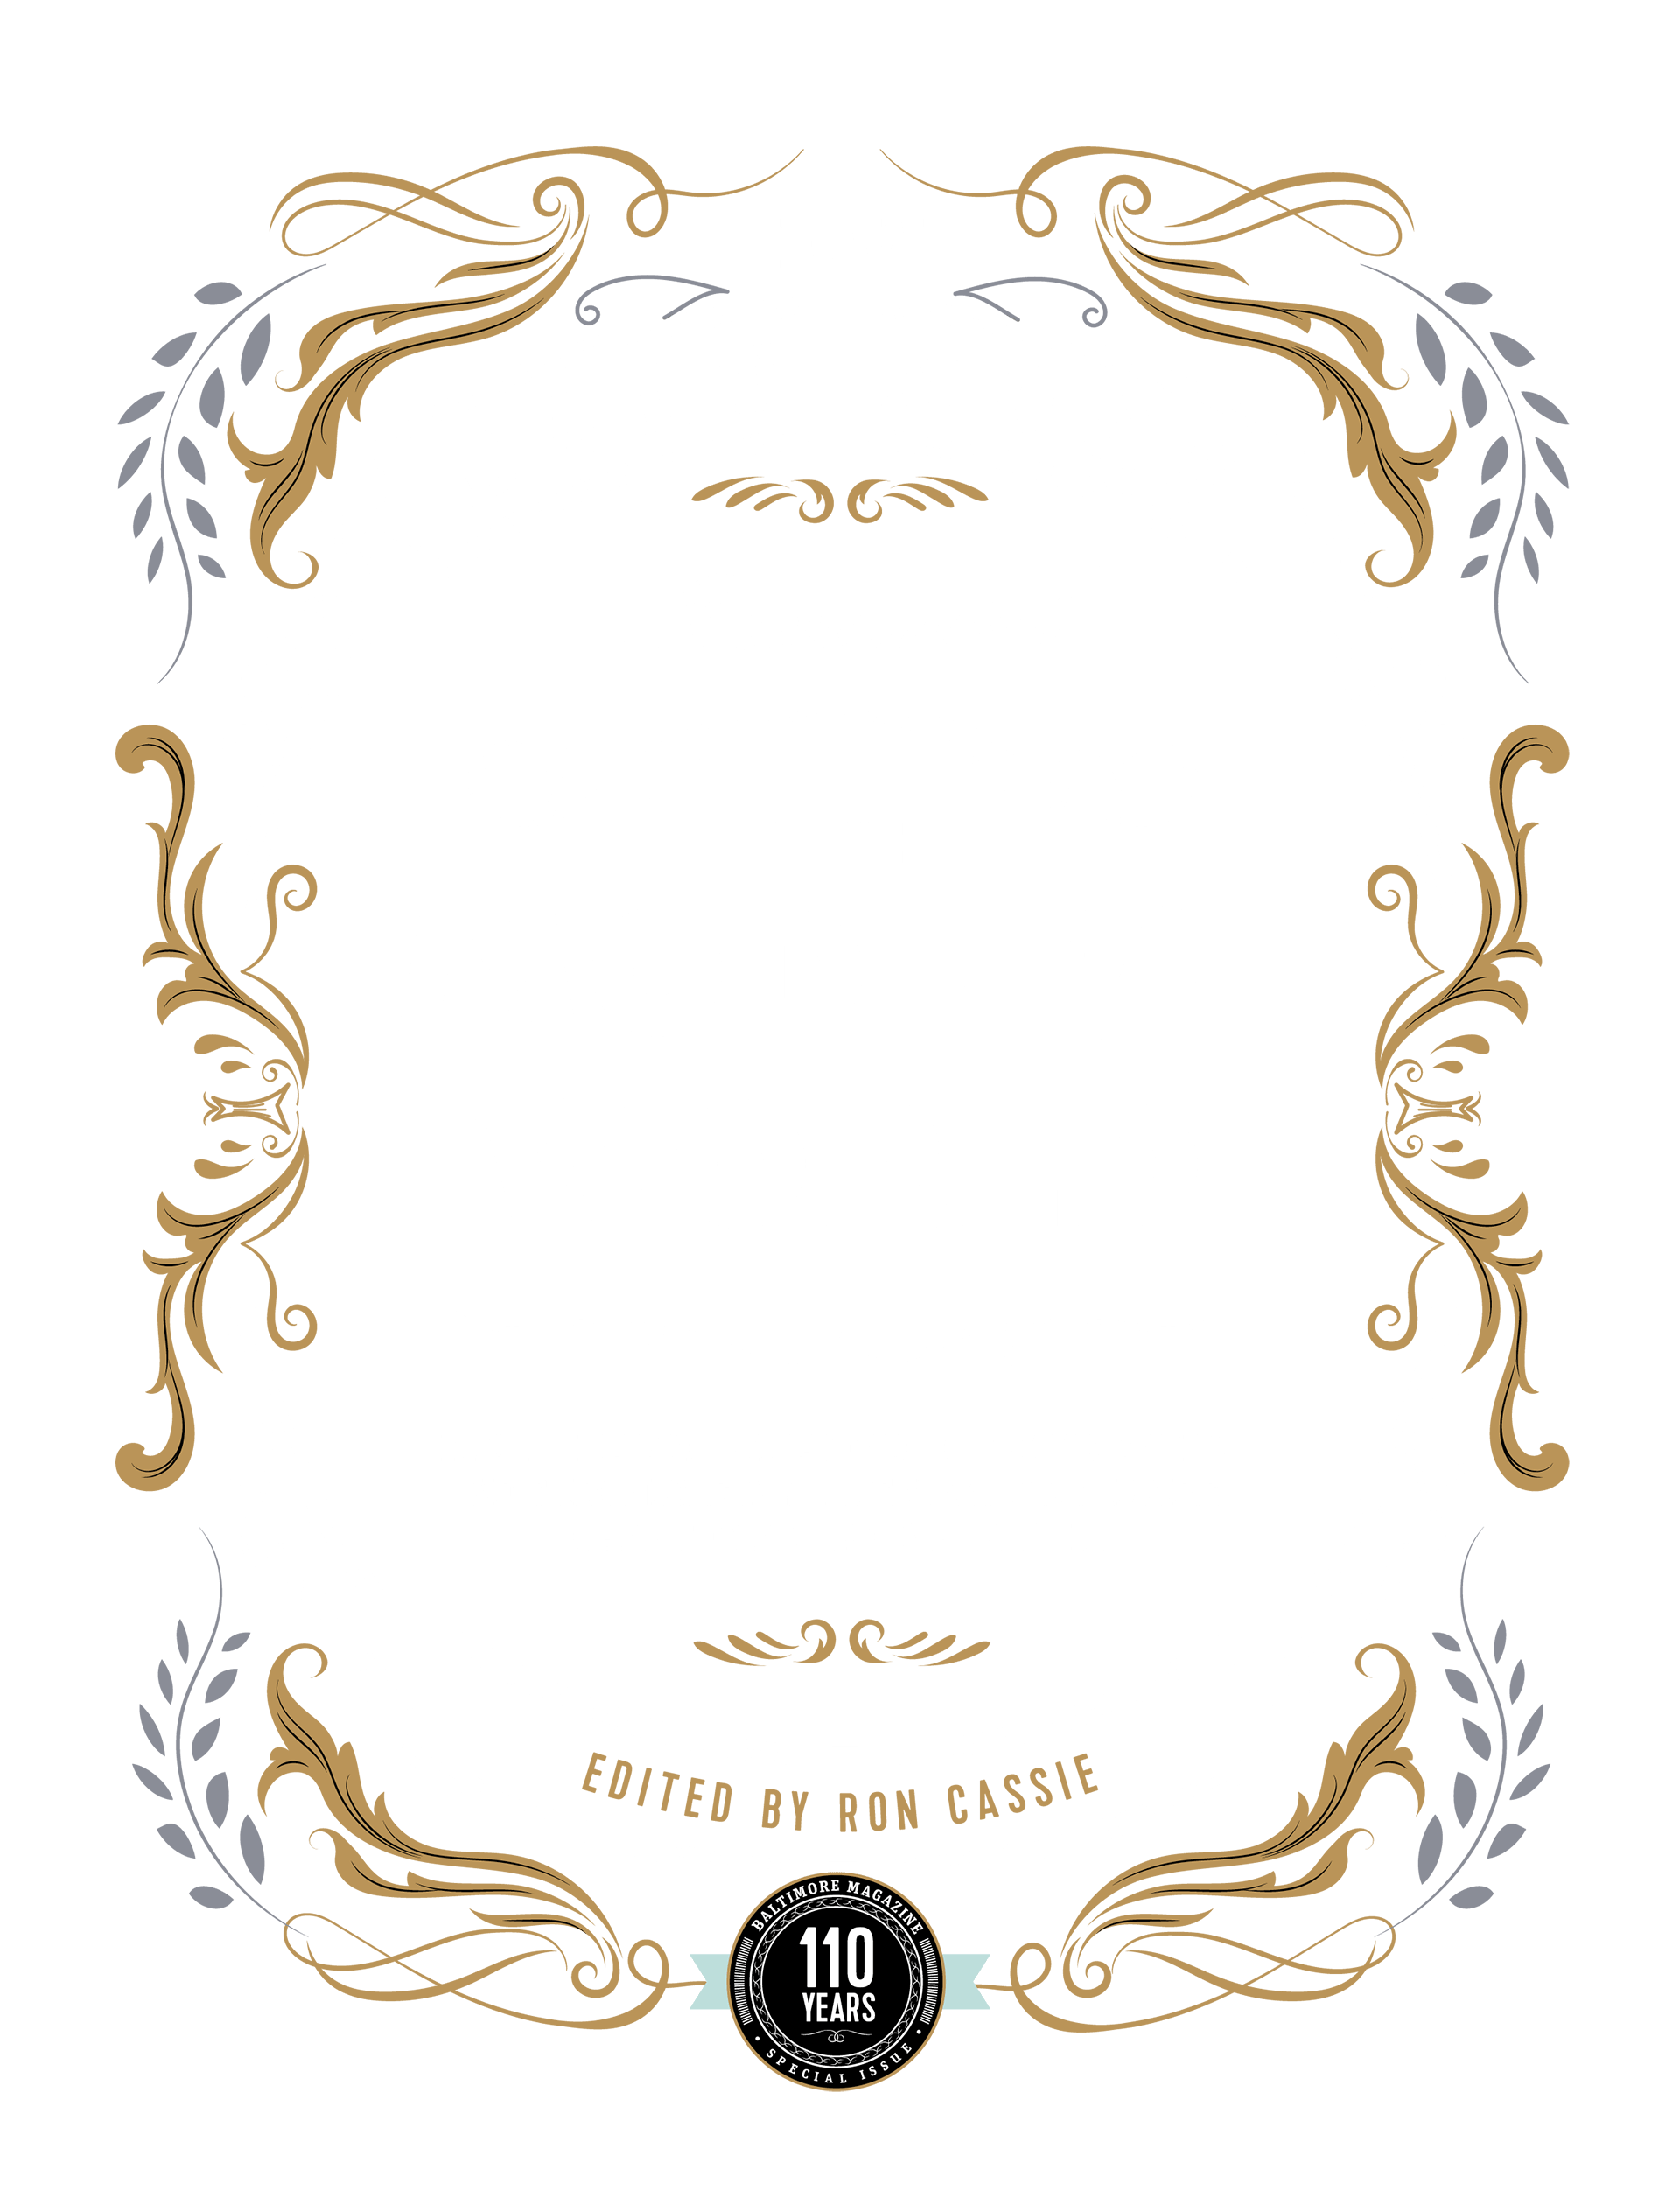 how baltimore invented the modern world